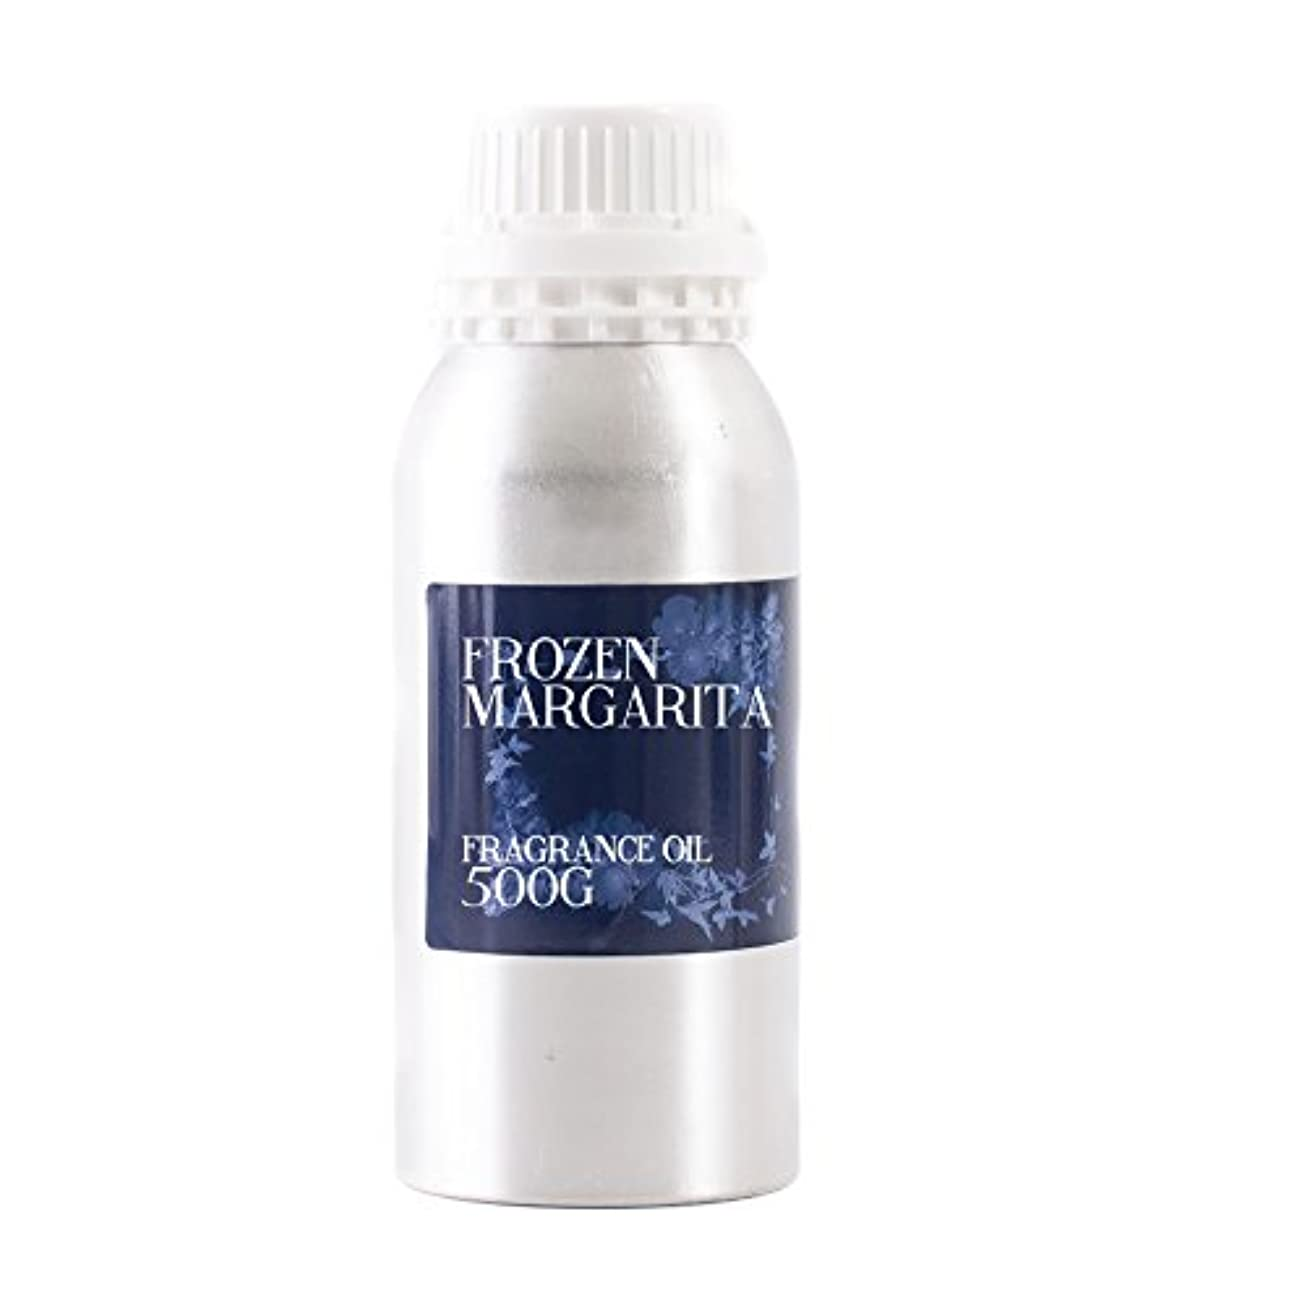 続編法廷仲間、同僚Mystic Moments | Frozen Margarita Fragrance Oil - 500g